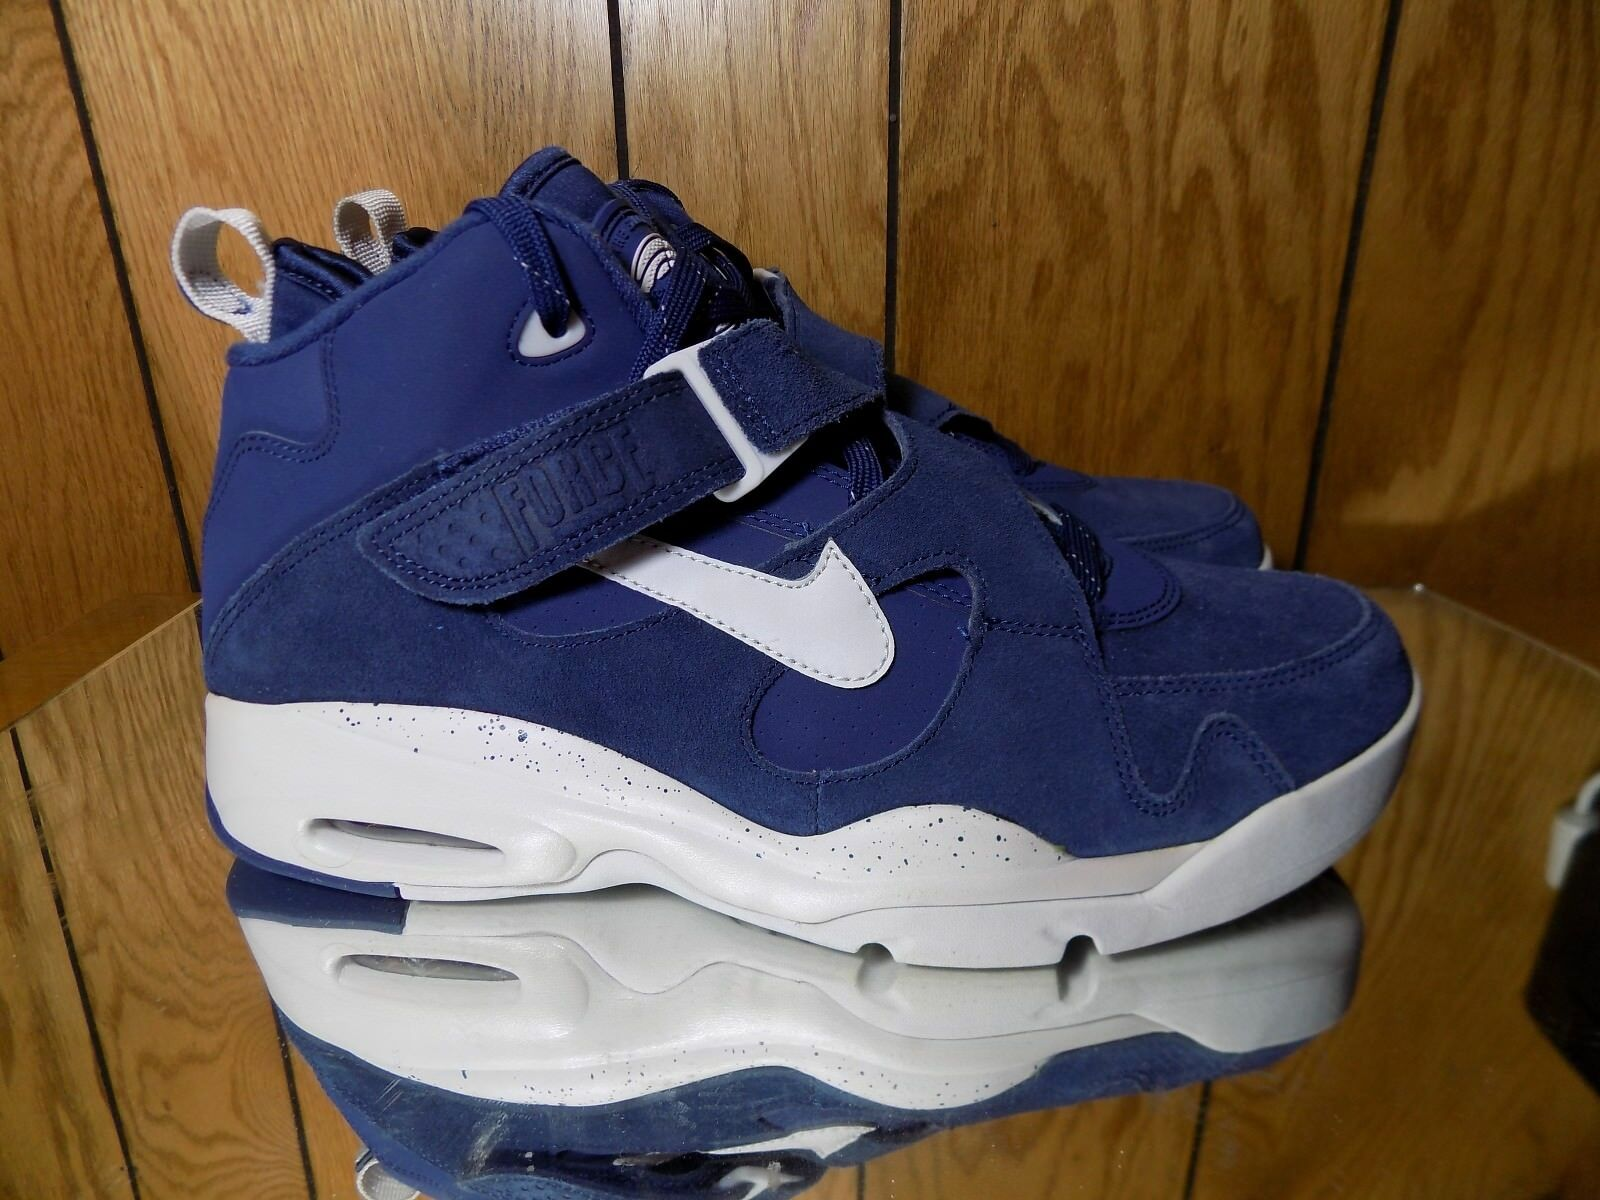 NEW MEN'S NIKE AIR FORCE MAX Blue White AH6745-400 s. 9 Casual wild